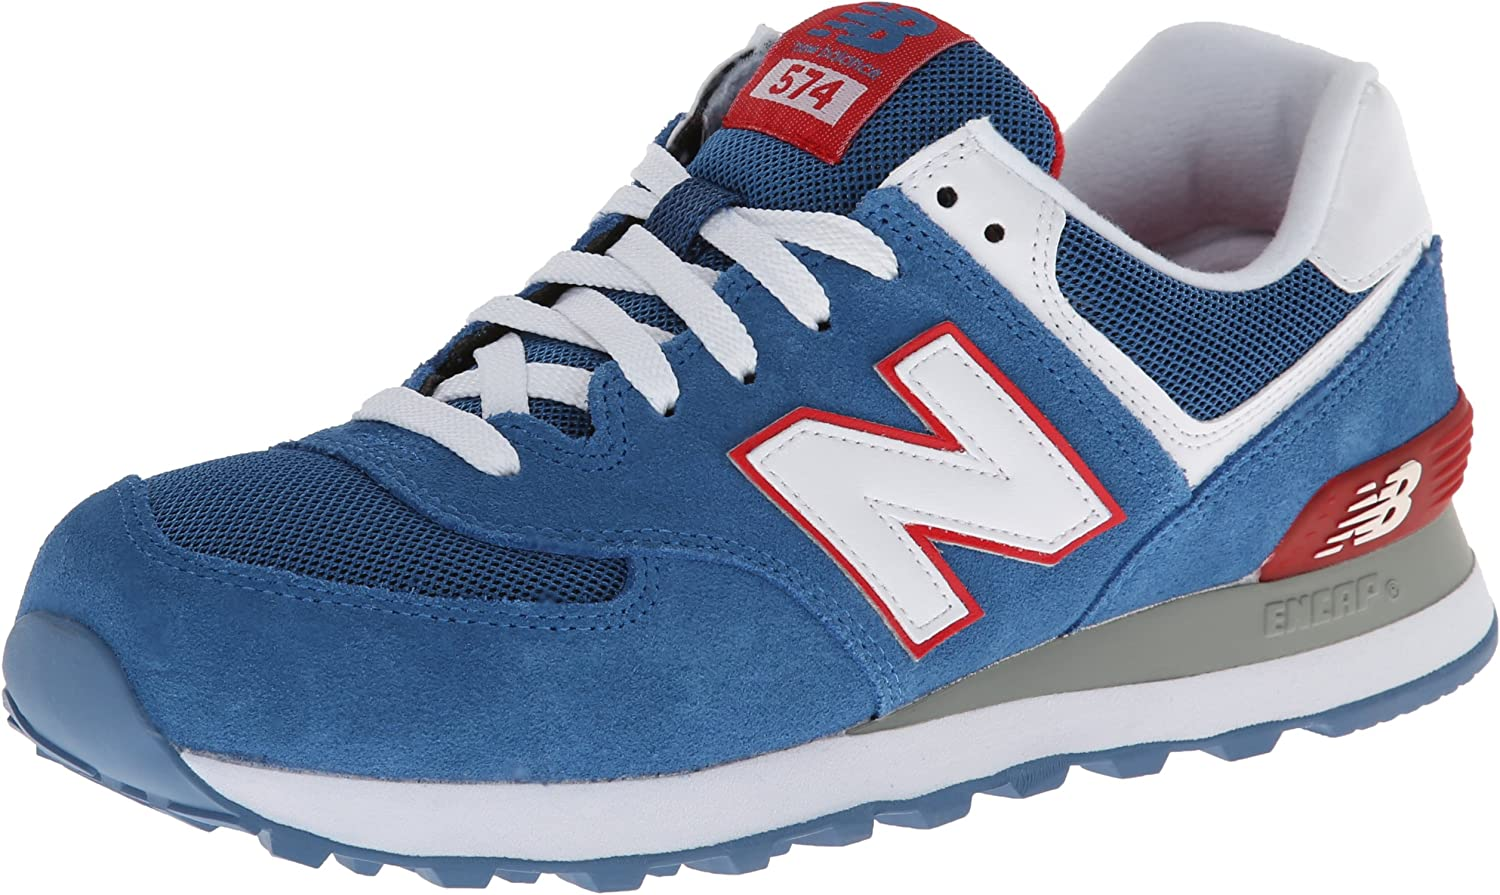 New Balance ML 574 CBR Blue Red 42.5: Amazon.co.uk: Shoes & Bags